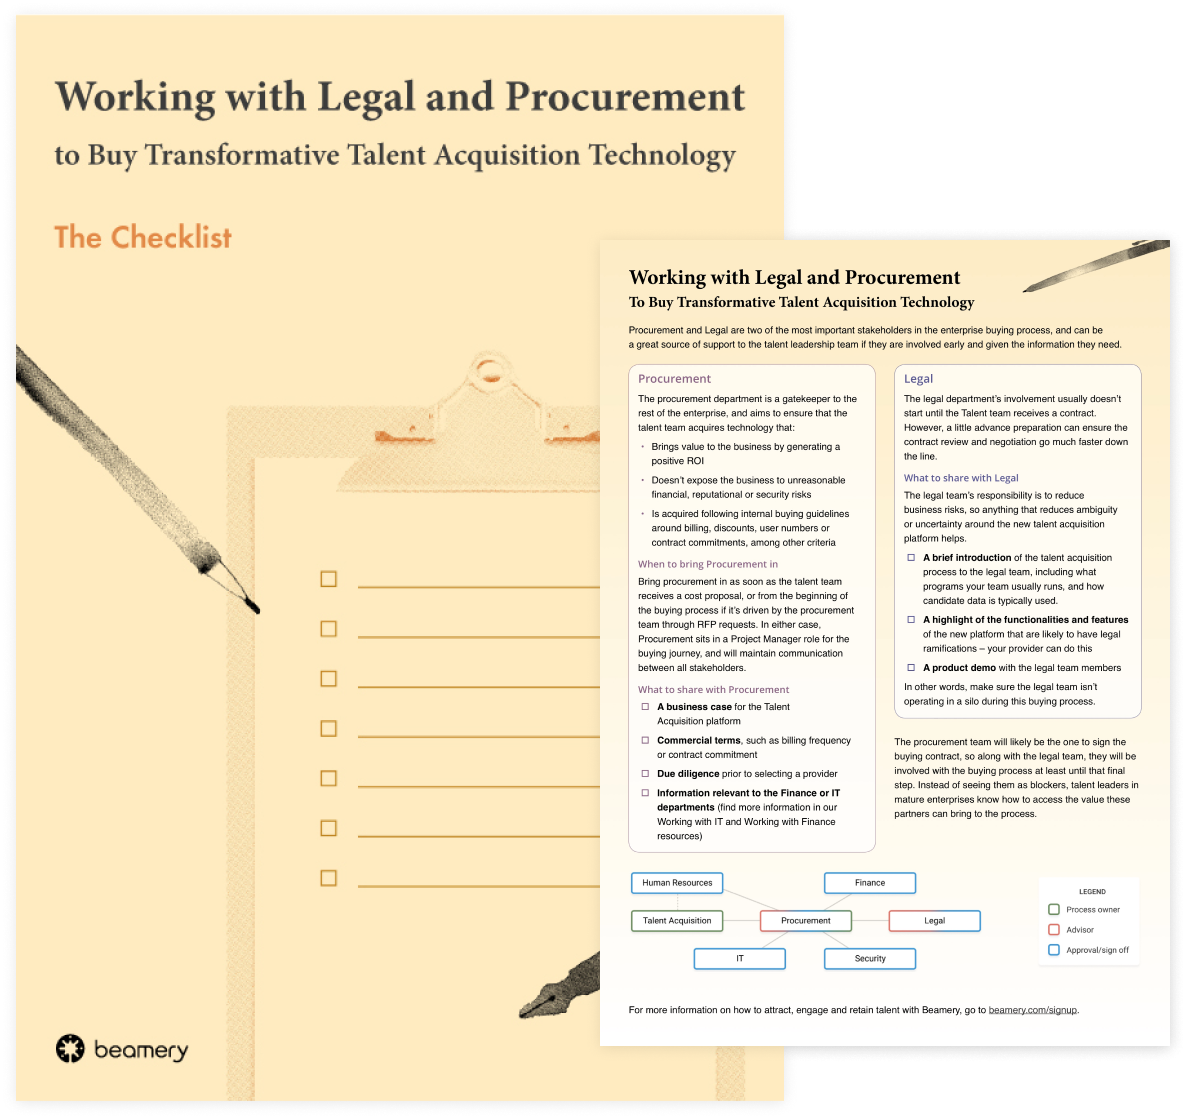 Working with Legal and Procurement to Buy Transformative Talent Acquisition Technology